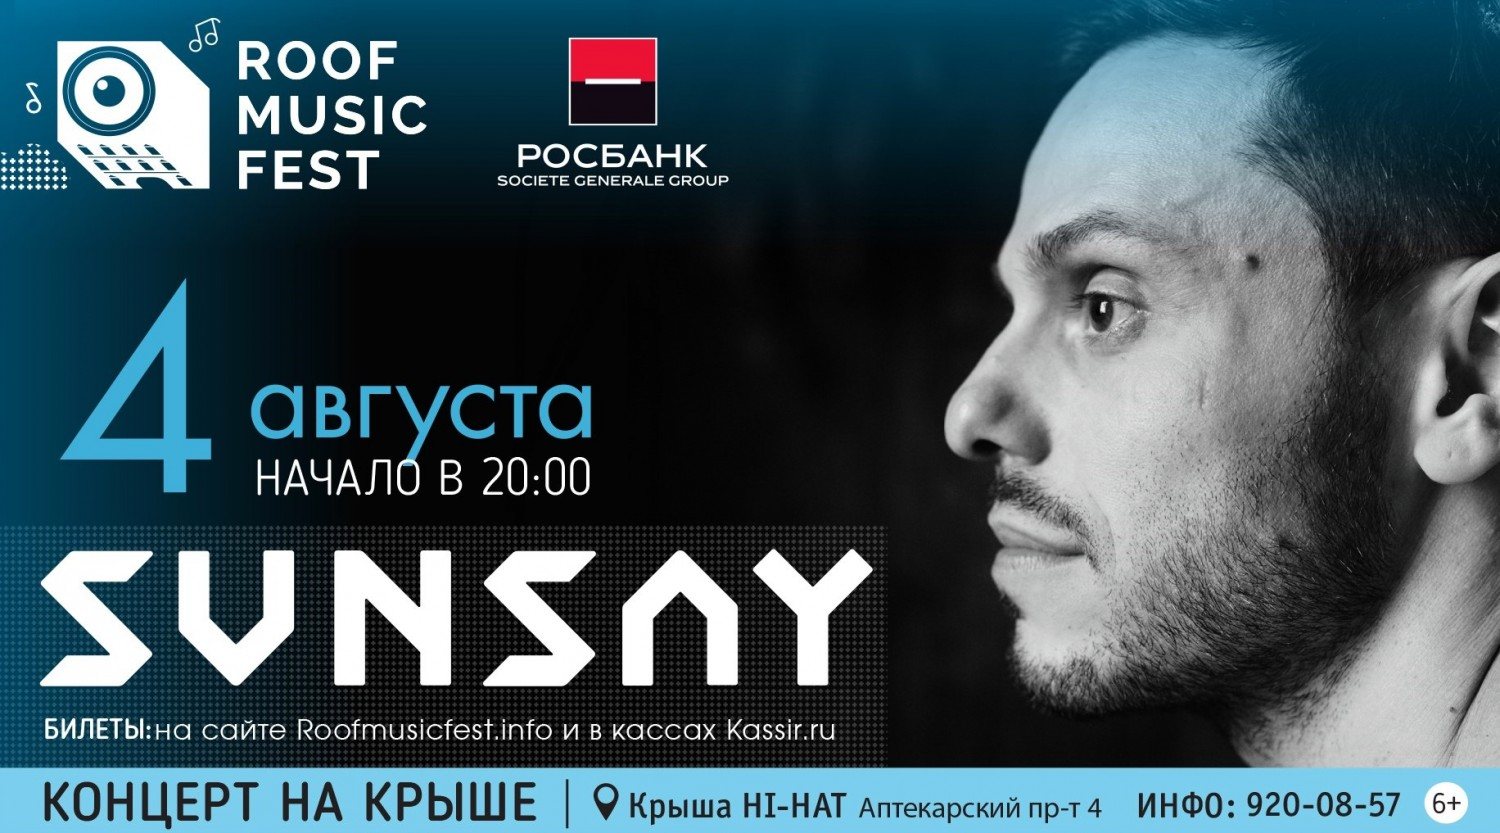 Sunsay - 4 августа Roof Music Fest источник фото: https://vk.com/sunsay_roofmusicfest